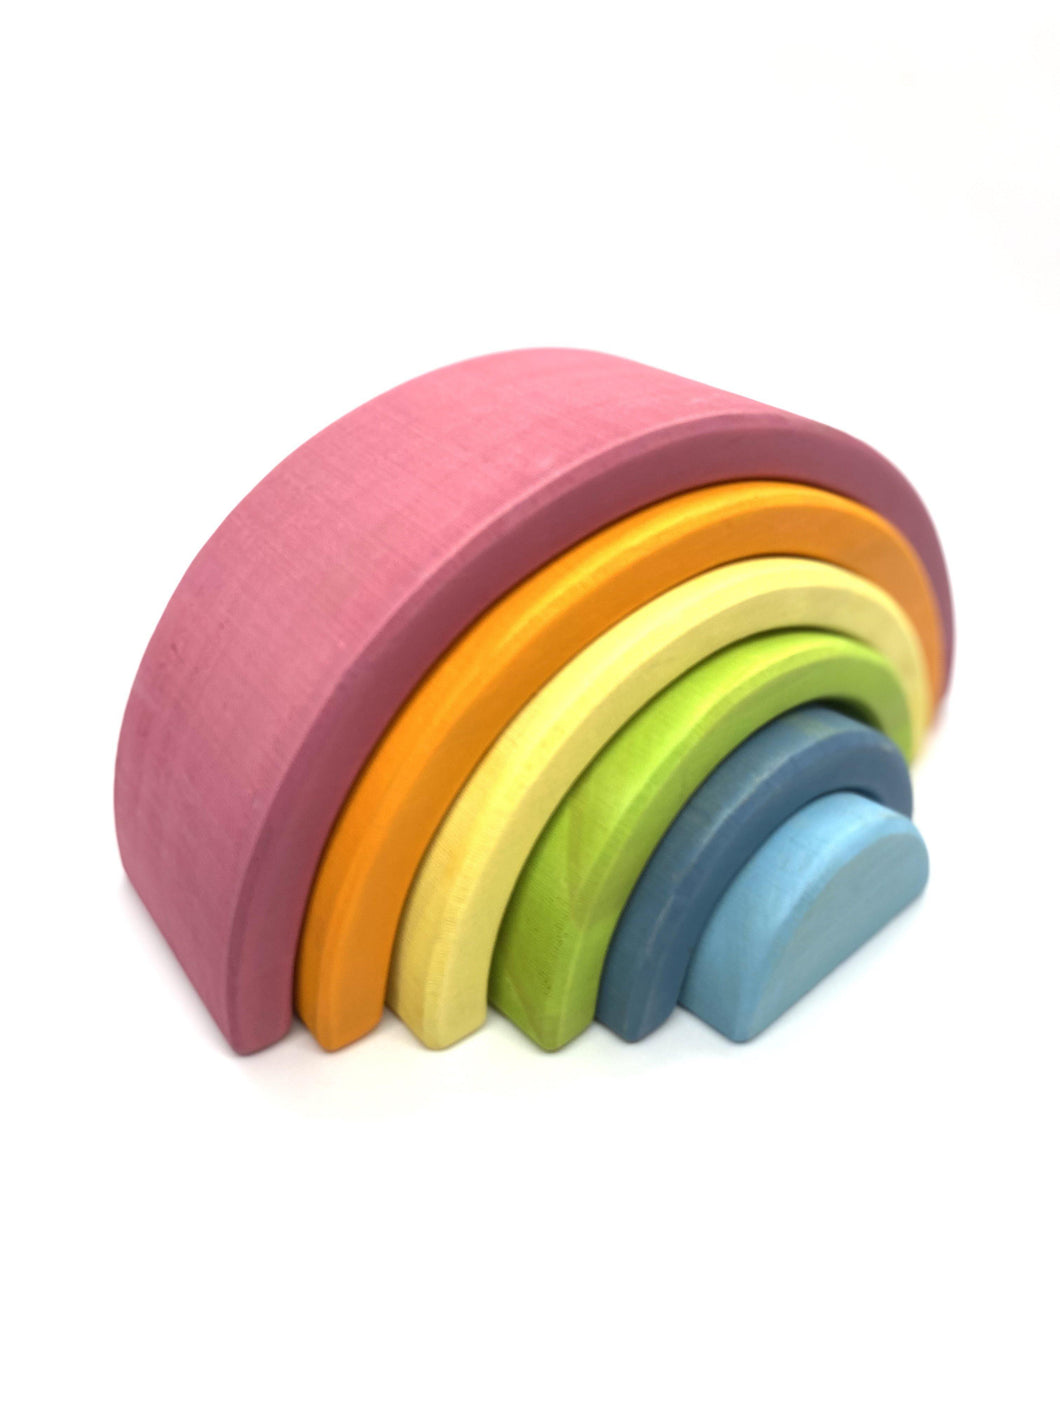 Pastel Rainbow Montessori Stackers - 6pc - My Eco Tot